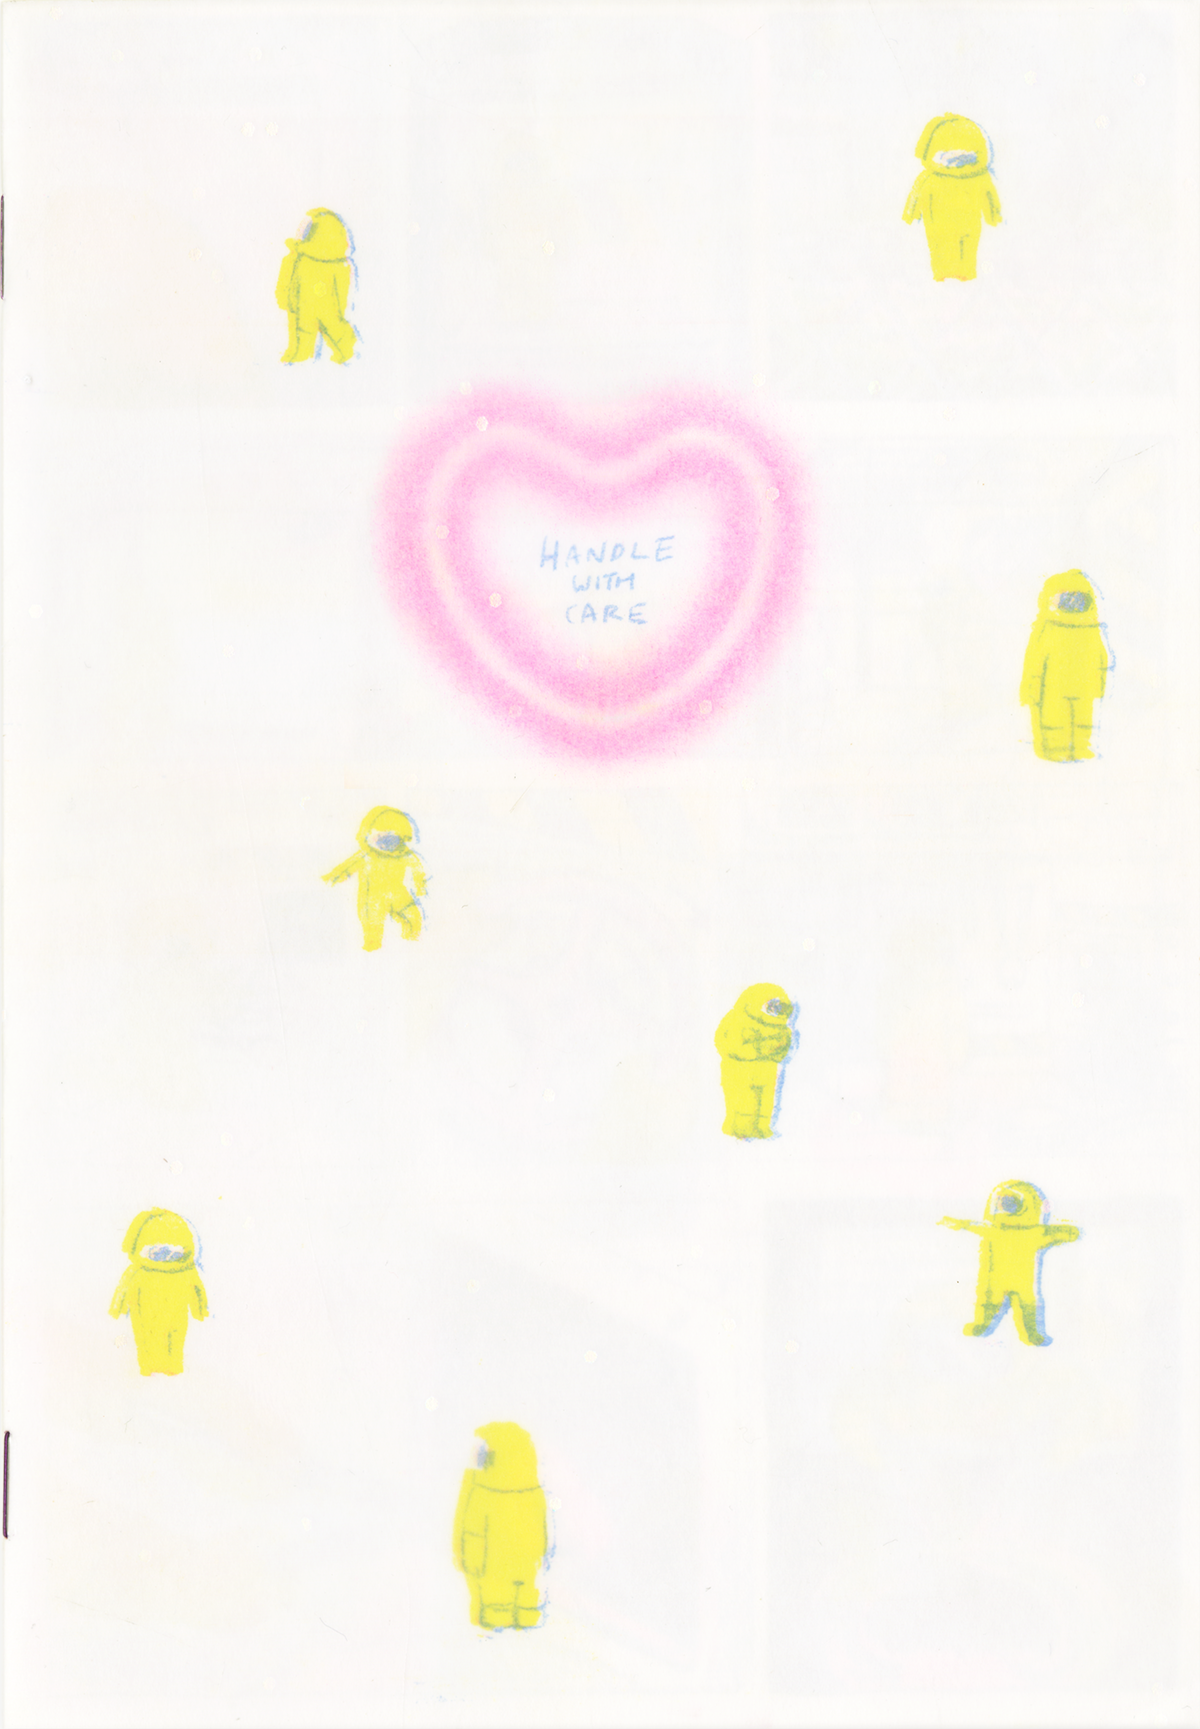 Handle With Care, a zine by Amanda Chung.